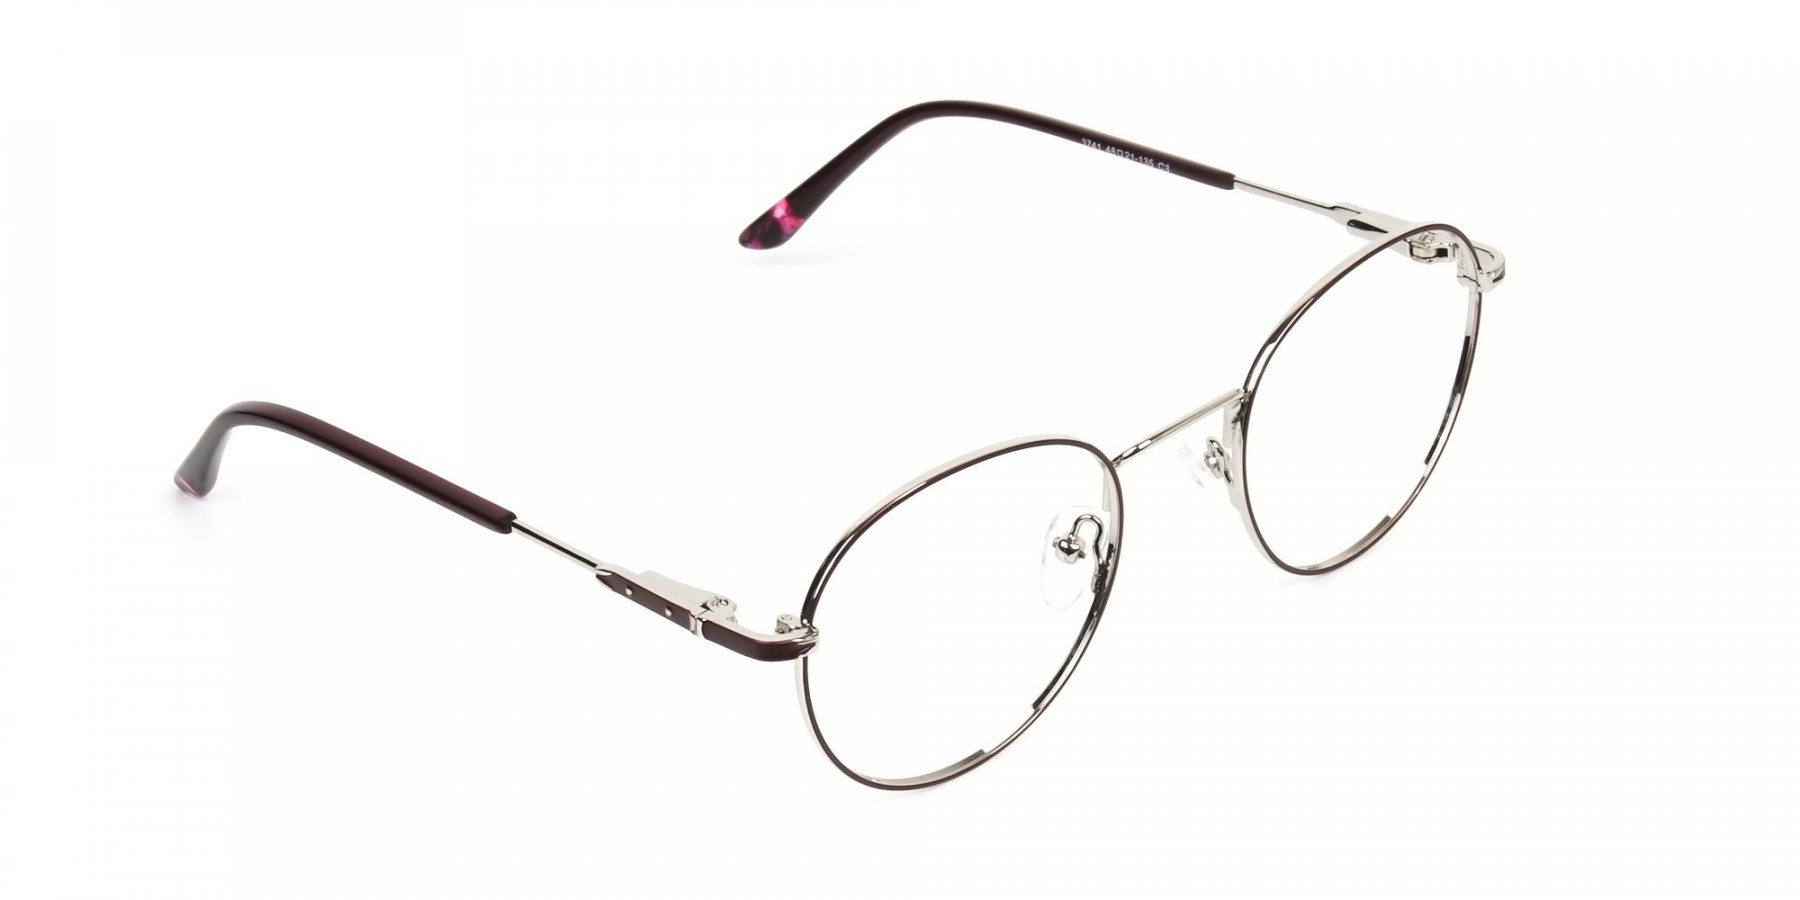 Silver, Burgundy & Purple Round Spectacles - 1